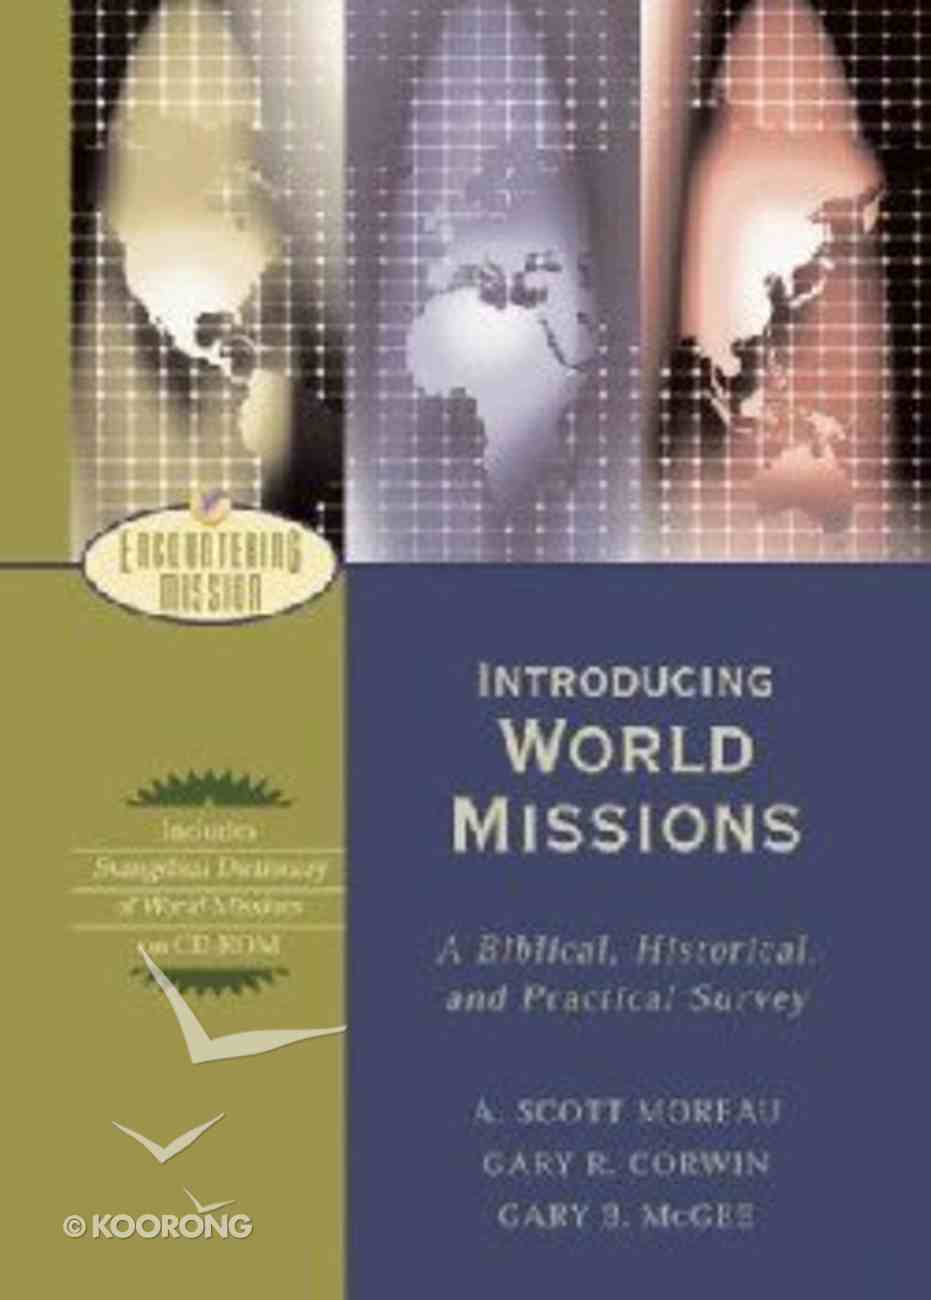 Introducing World Missions - a Biblical, Historical, and Practical Introduction (Encountering Mission Series) Hardback